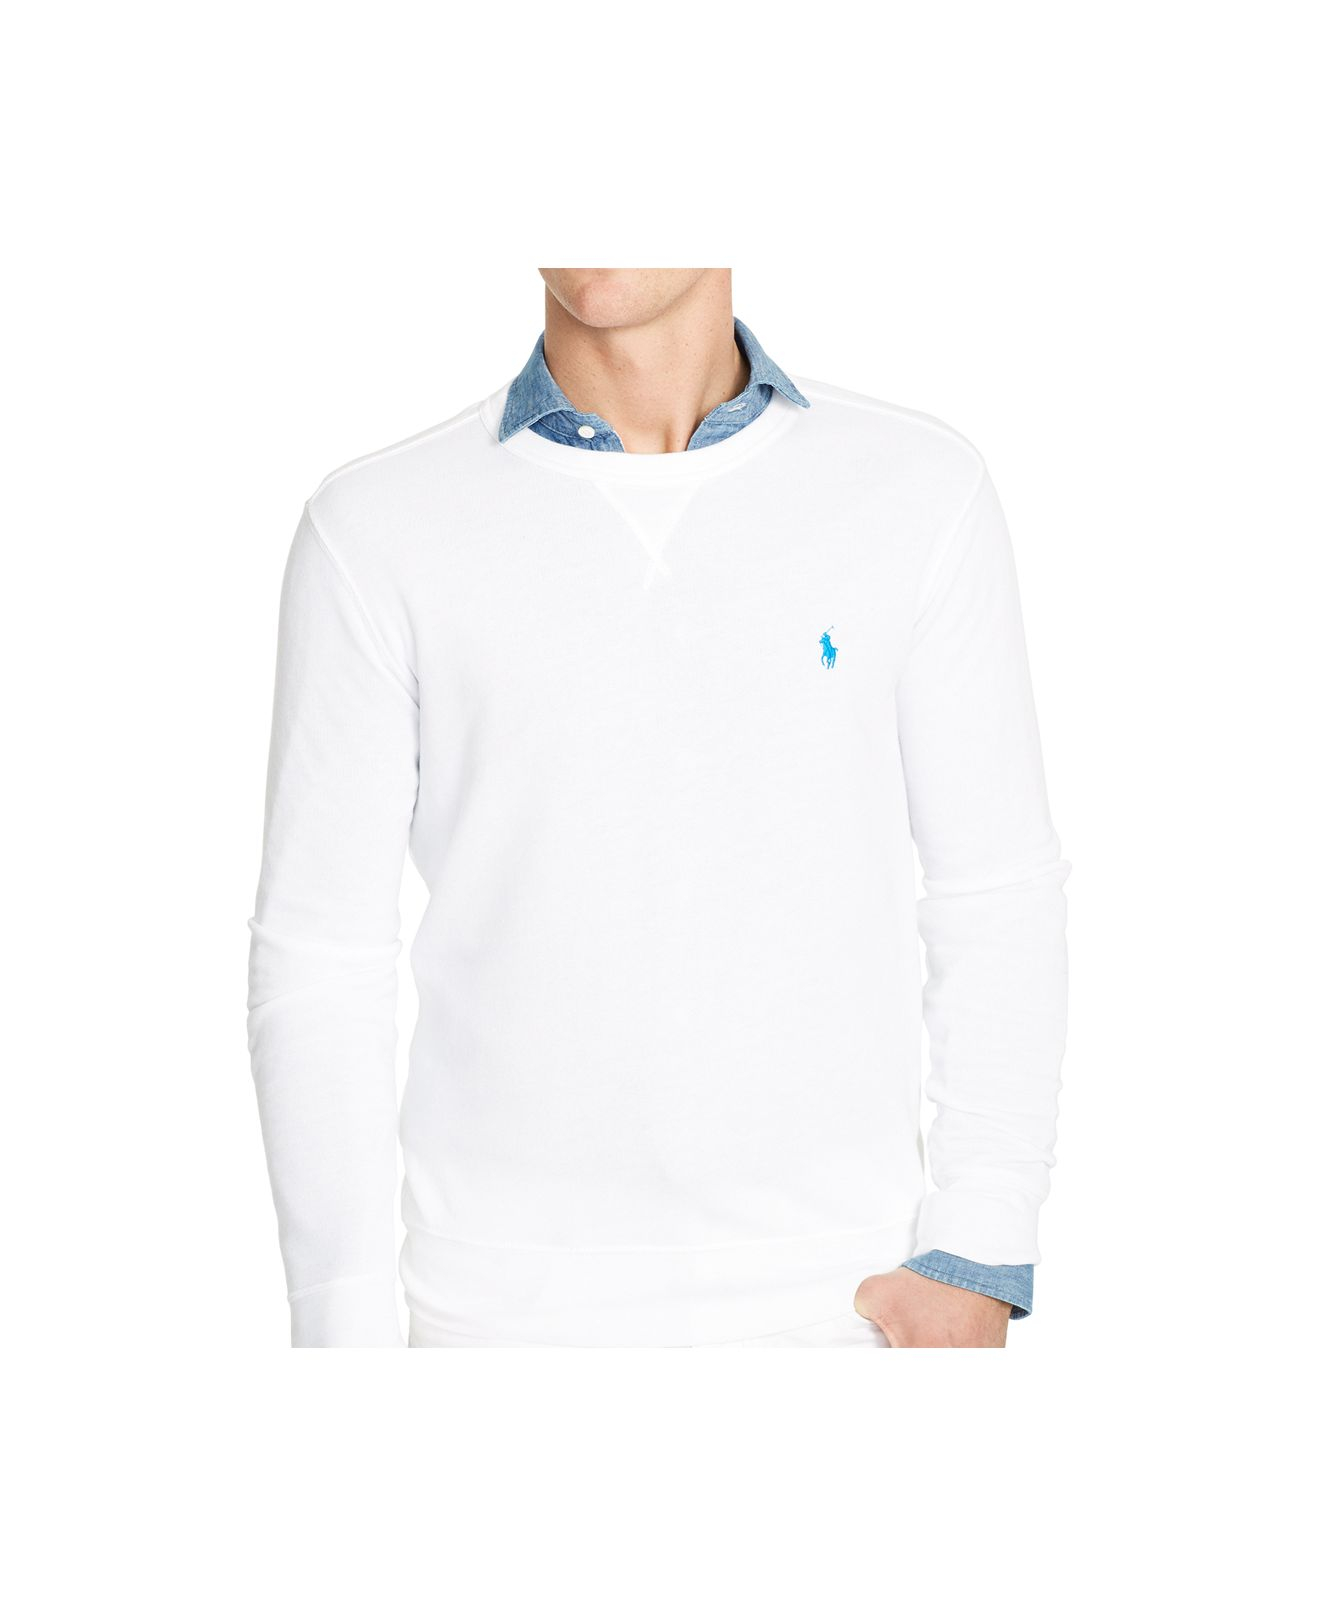 polo ralph lauren terry crew neck pullover in white for men lyst. Black Bedroom Furniture Sets. Home Design Ideas